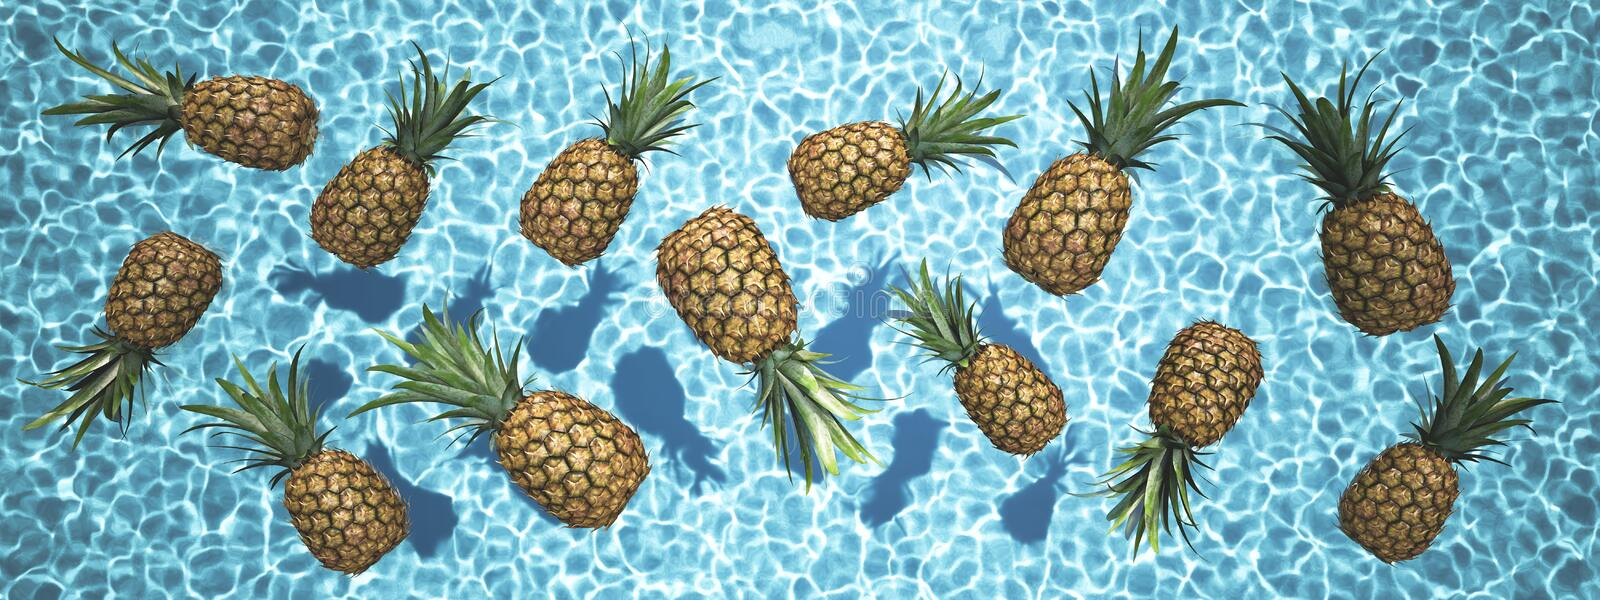 Pineapples swimming in a blue pool. 3d rendering stock photography